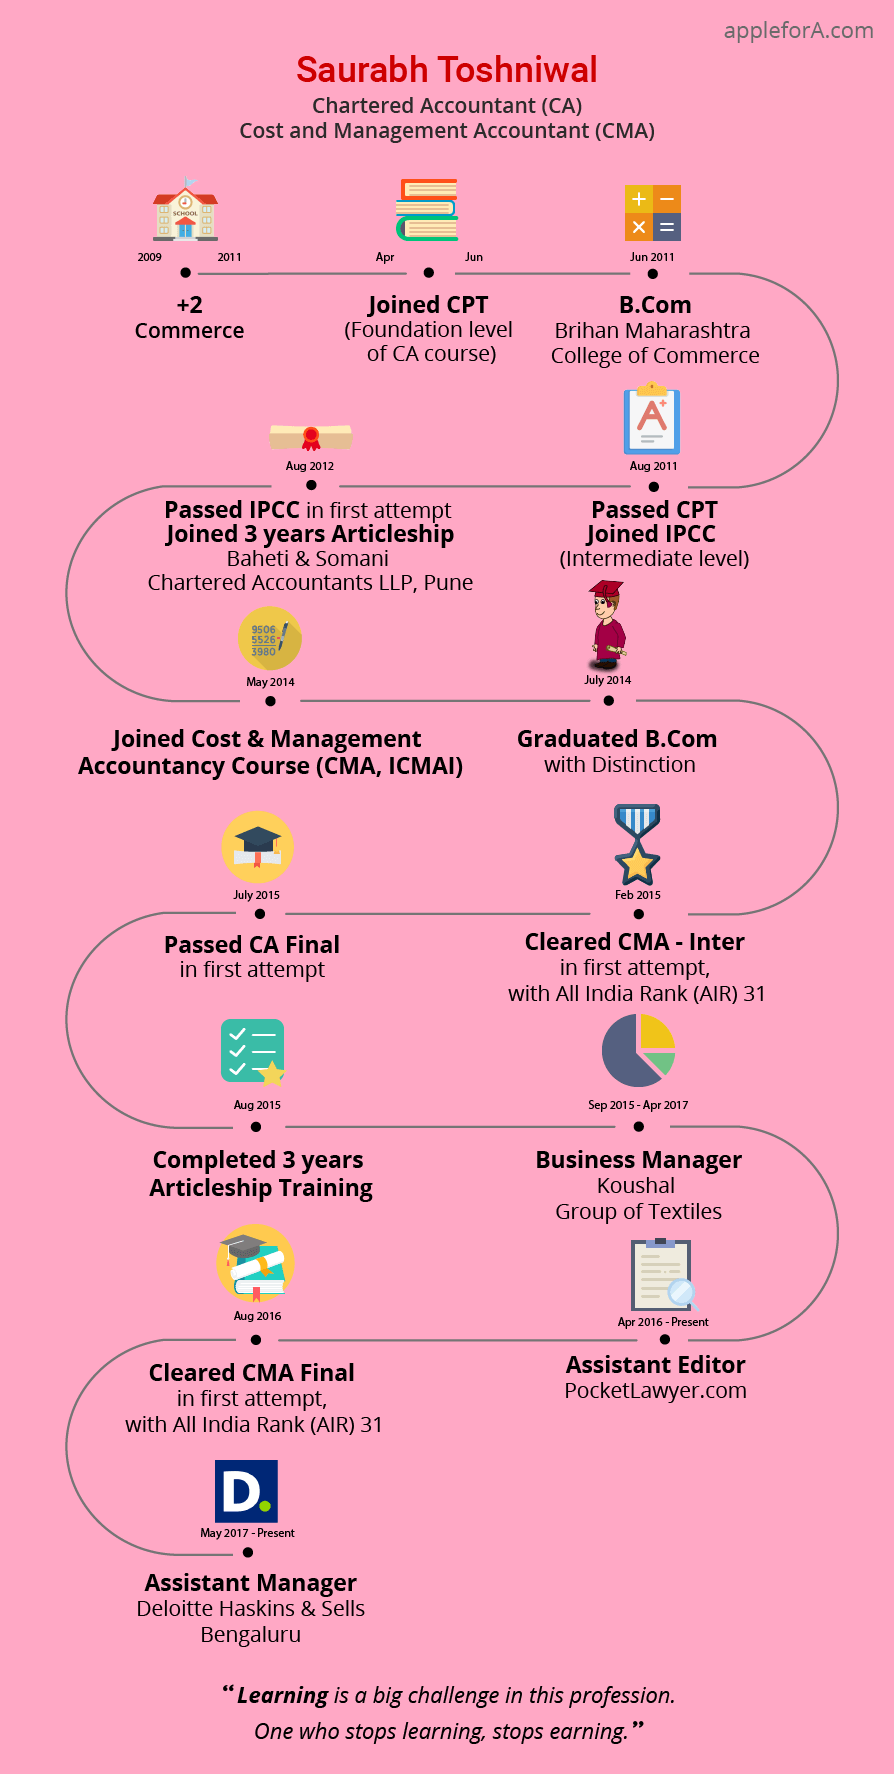 career path of chartered accountant Management accountant beta try an improved version of this page  the association of certified chartered accountants (acca)  career path and progression with experience, you could become a senior manager or finance director, or the chief executive of a company you could also become a self-employed management consultant.